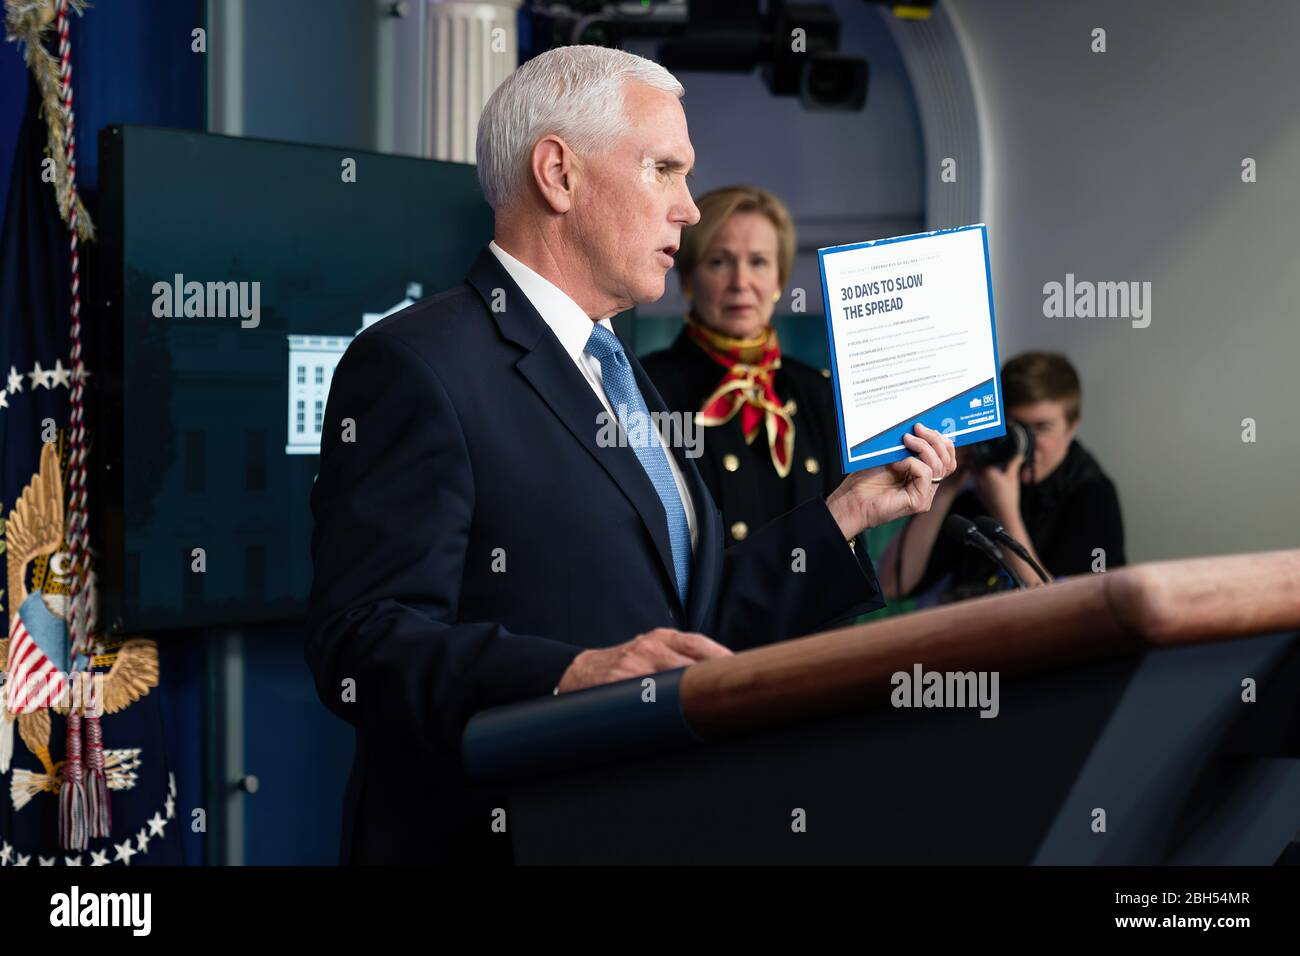 White House Coronavirus Update Briefing President Donald J. Trump listens as Vice President Mike Pence delivers remarks at a coronavirus update briefing Tuesday, March 31, 2020, in the James S. Brady Press Briefing Room of the White House. Stock Photo